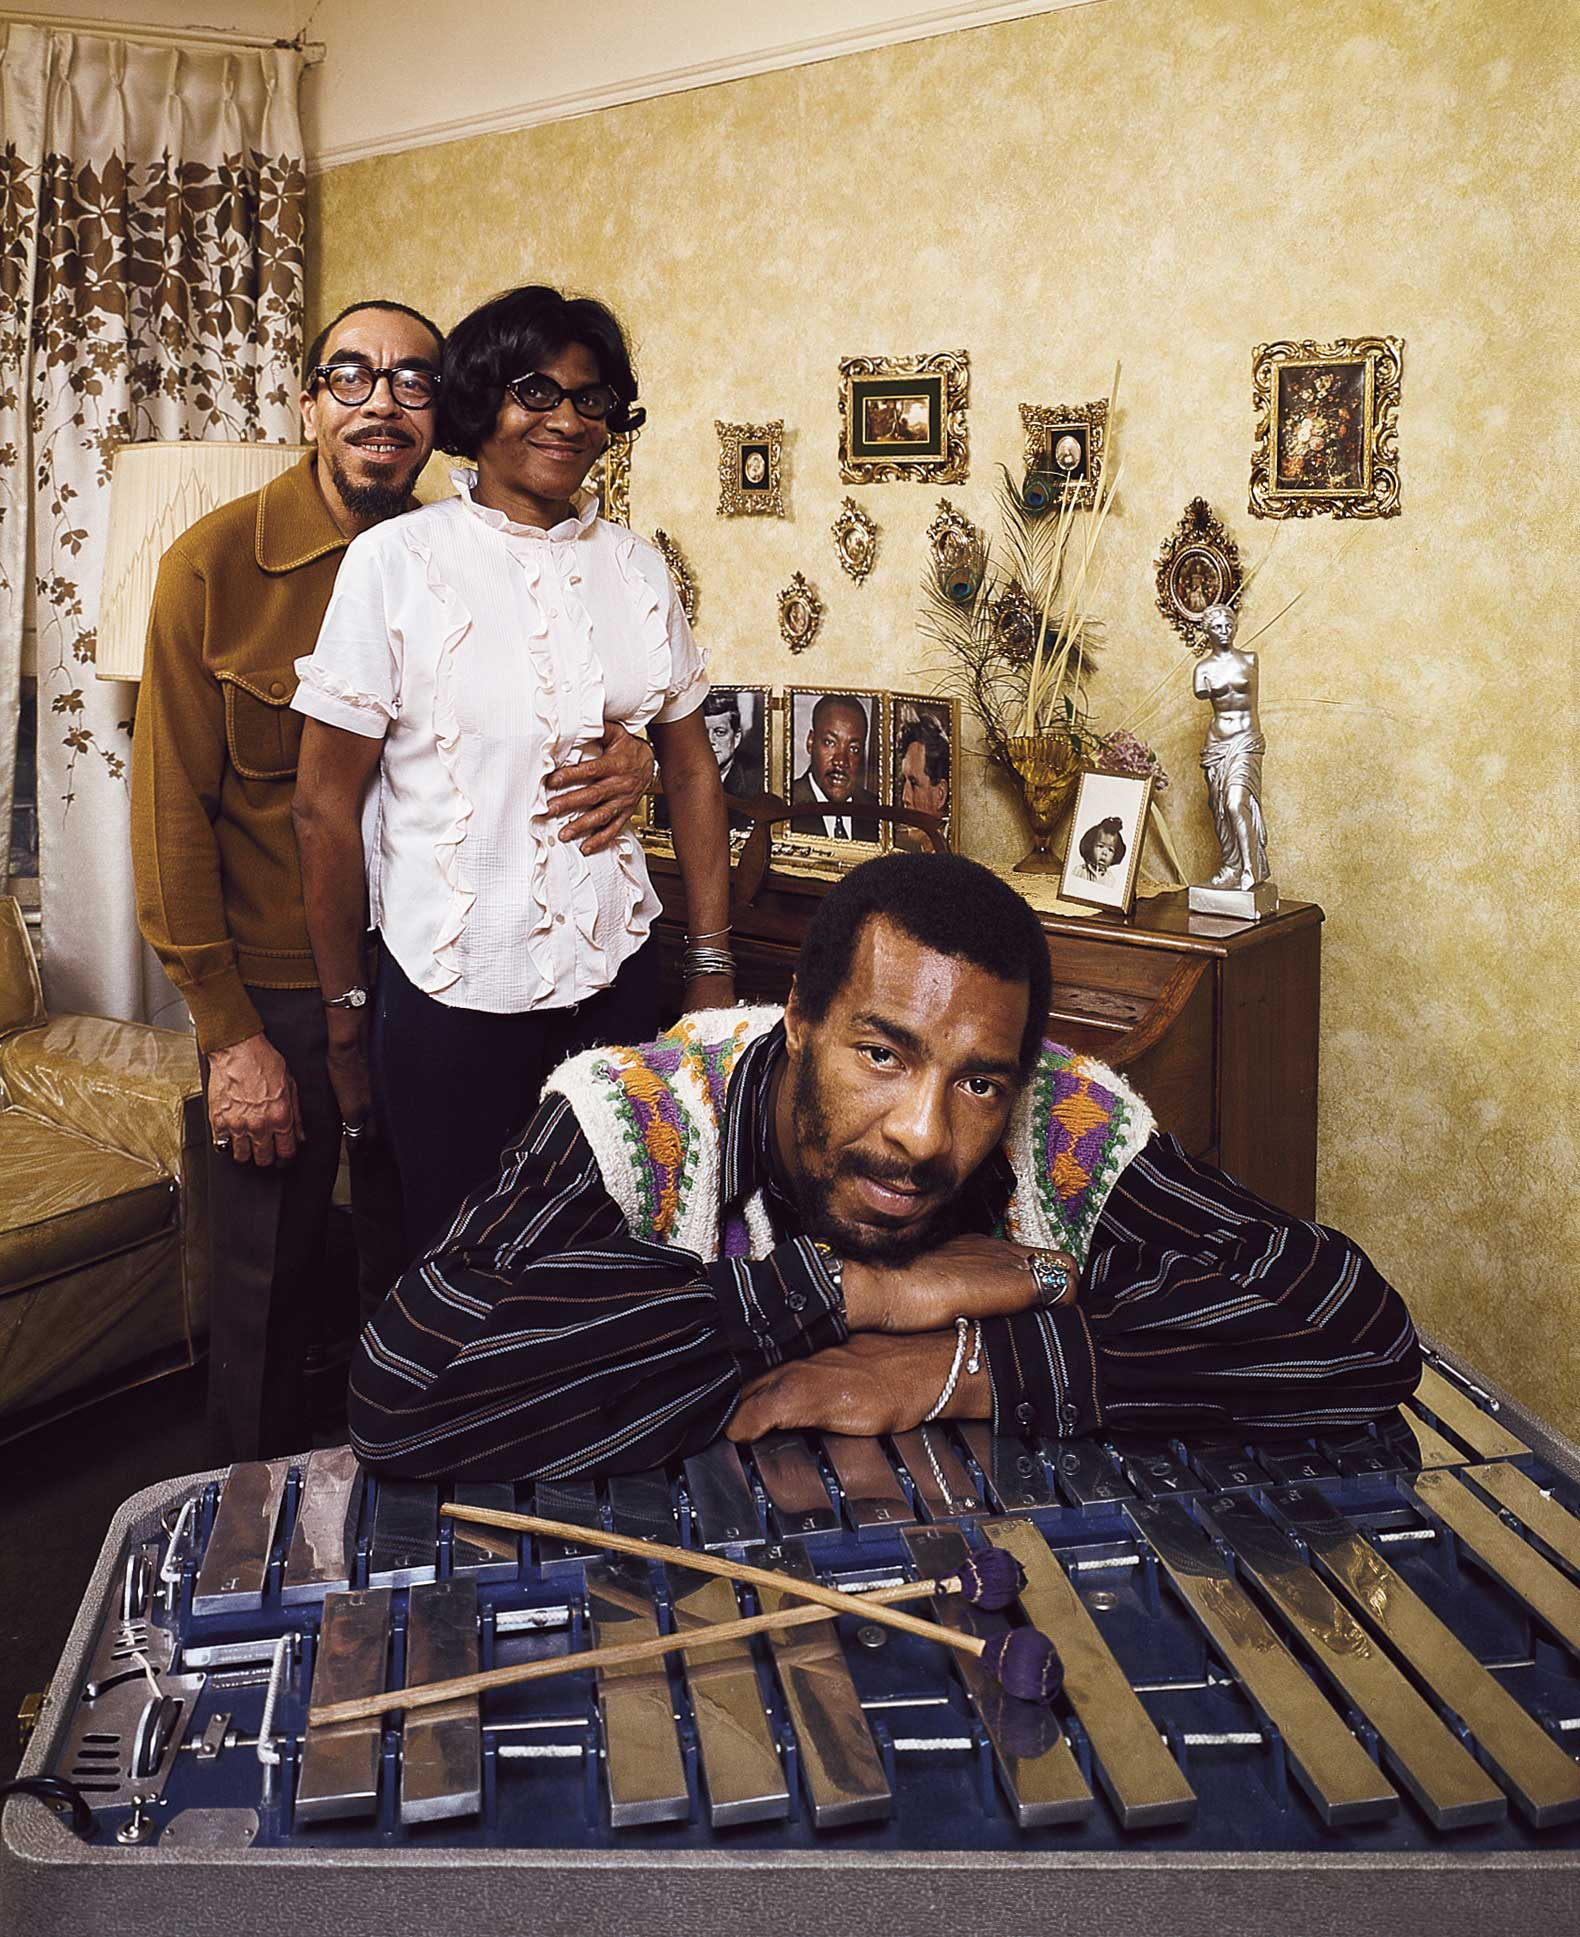 "Richie Havens with his parents, Brooklyn in 1970. The musician who opened the show at Woodstock grew up with his folks, Richard and Mildred, in Bedford-Stuyvesant, Brooklyn, but he bought them this home in nearby East Flatbush when his music career took off. The Havenses had nine kids and, as Mrs. Havens told LIFE, ""Richie is the only one who's really moved away. I can't get rid of most of them."""